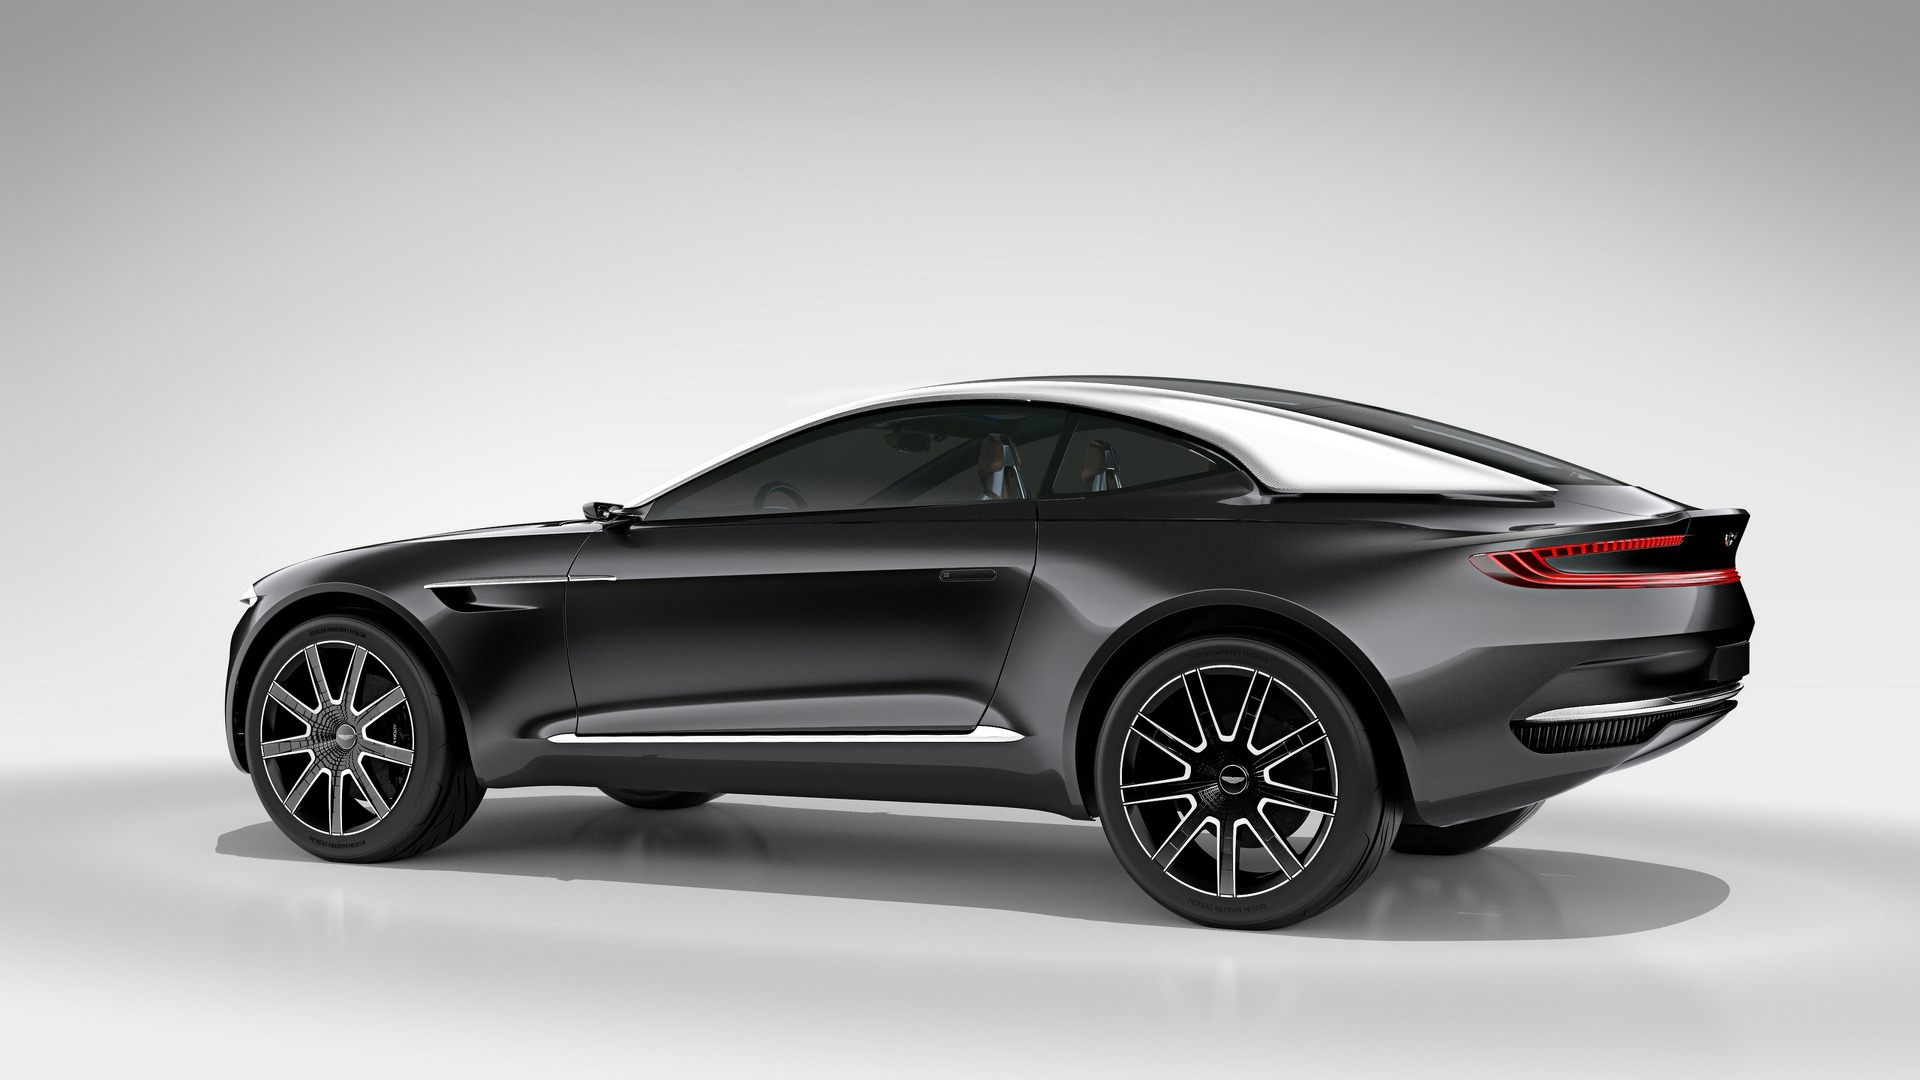 Aston Martin S Upcoming Dbx Crossover Could Pack A Potent V12